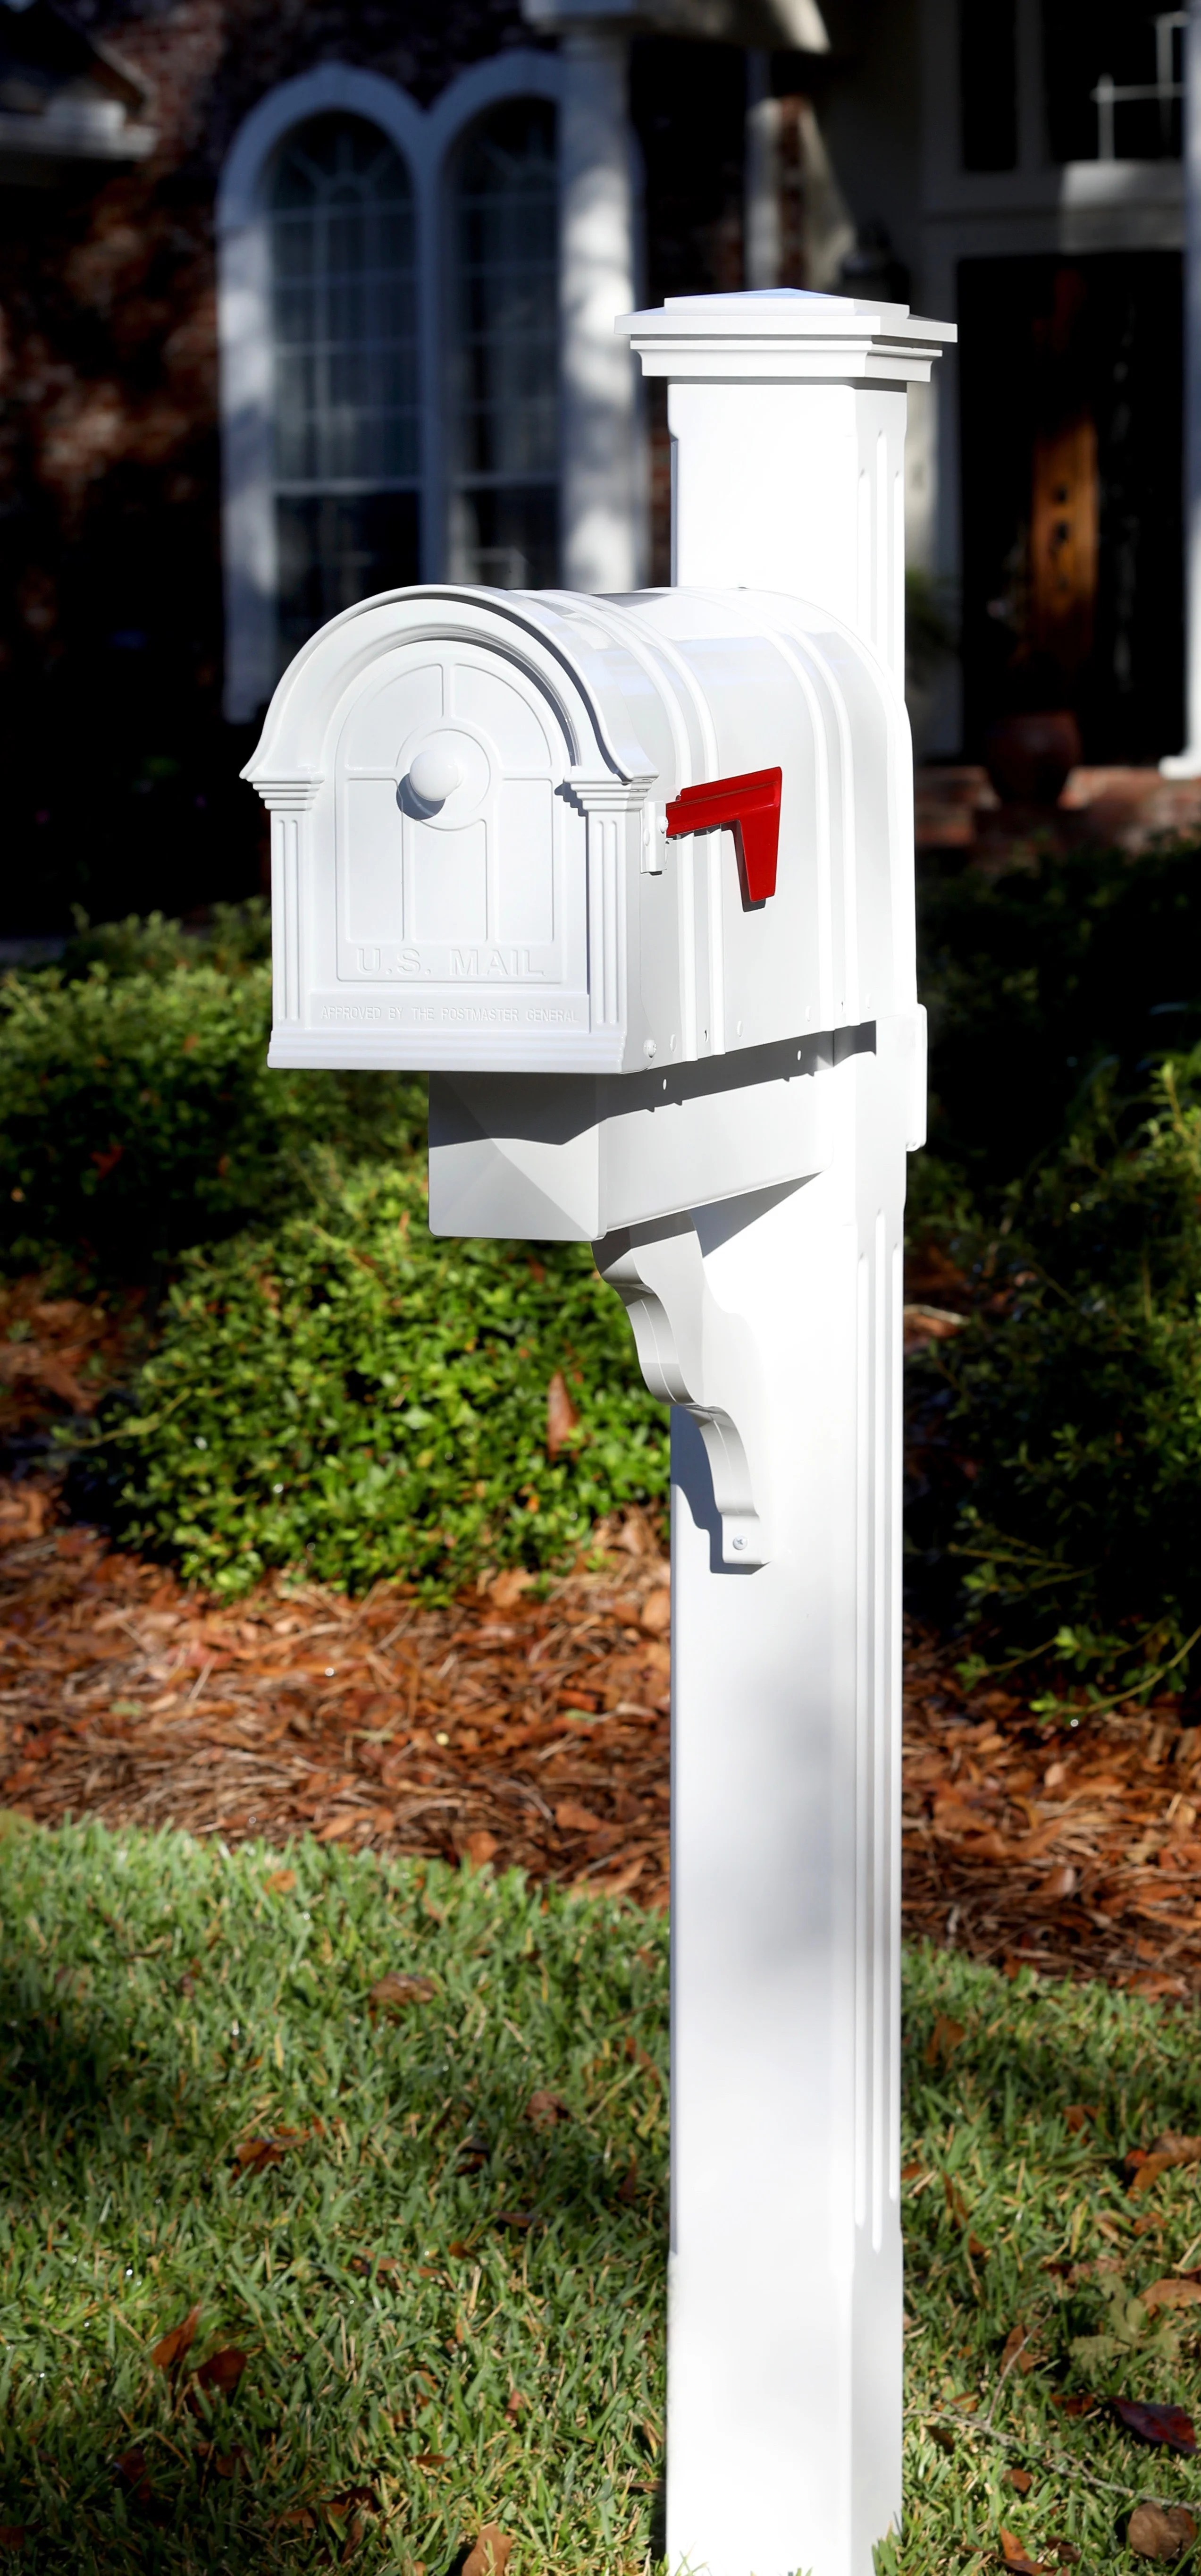 Where To Find Mailboxes : where, mailboxes, Mailboxes, Wayfair